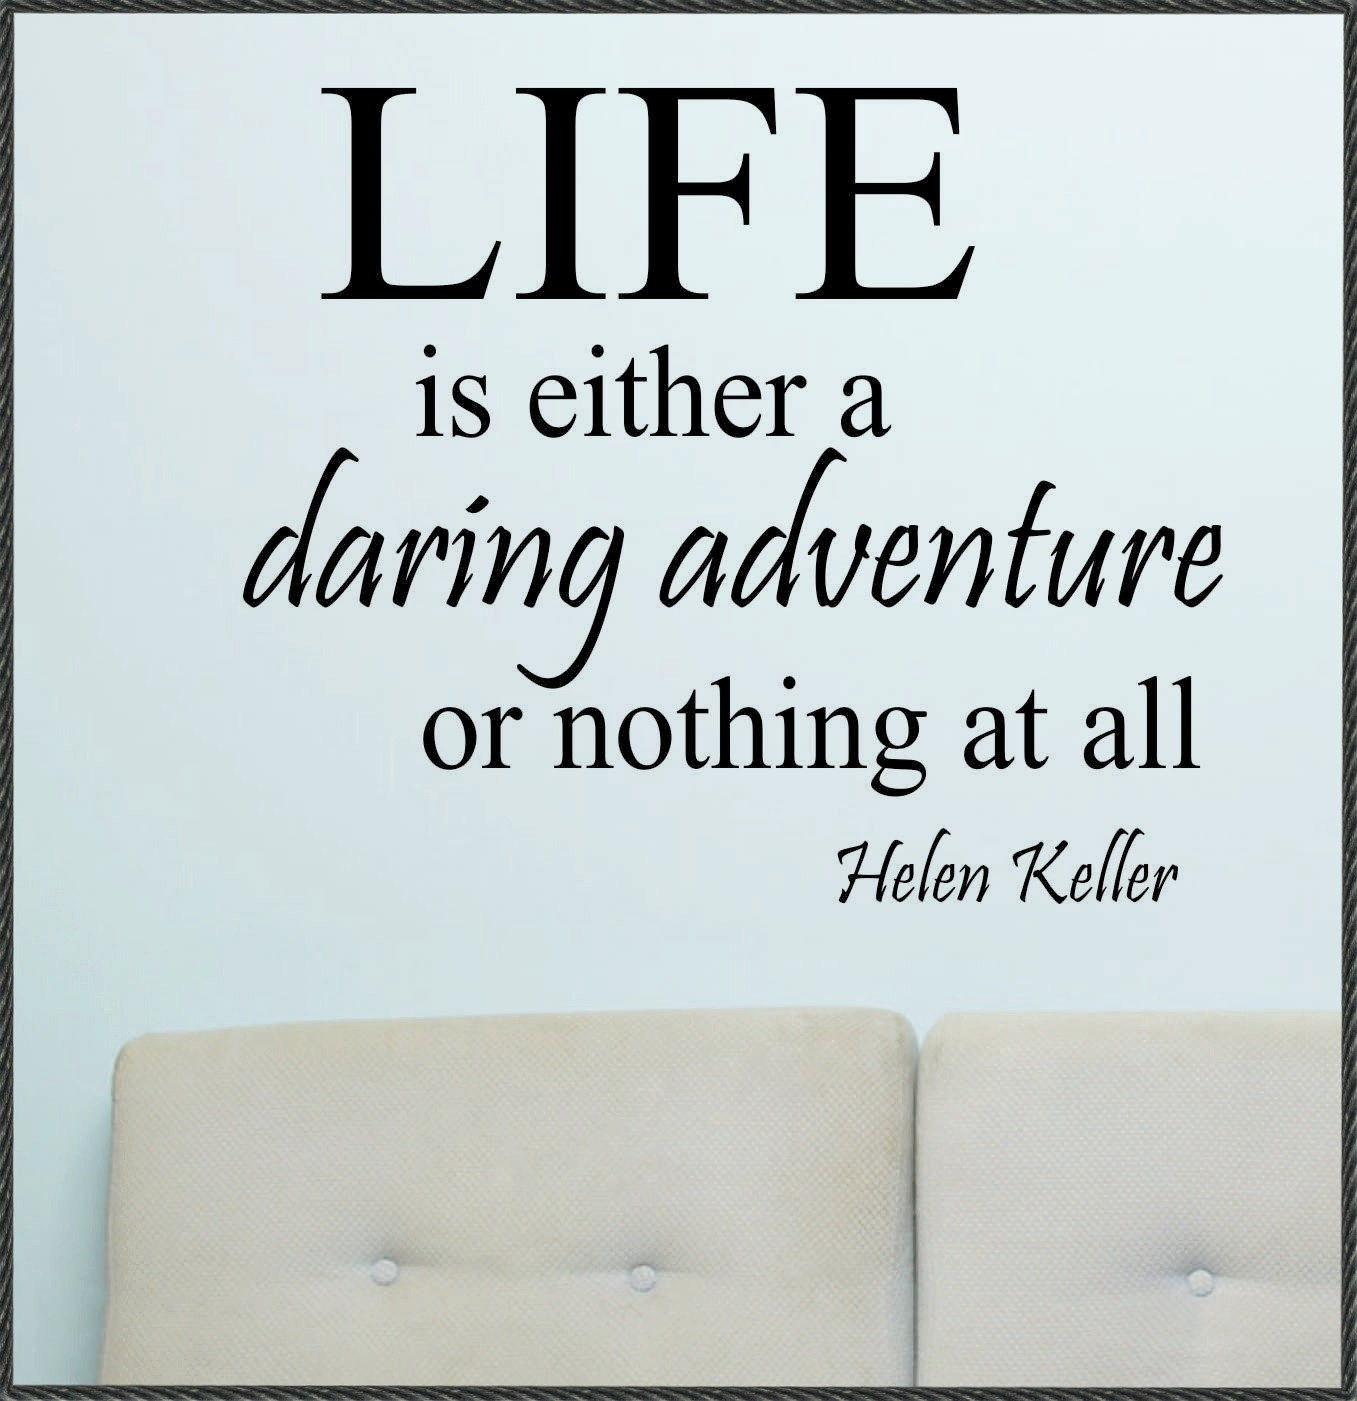 Best Quotes About Life 62 Best Daring Quotes And Sayings